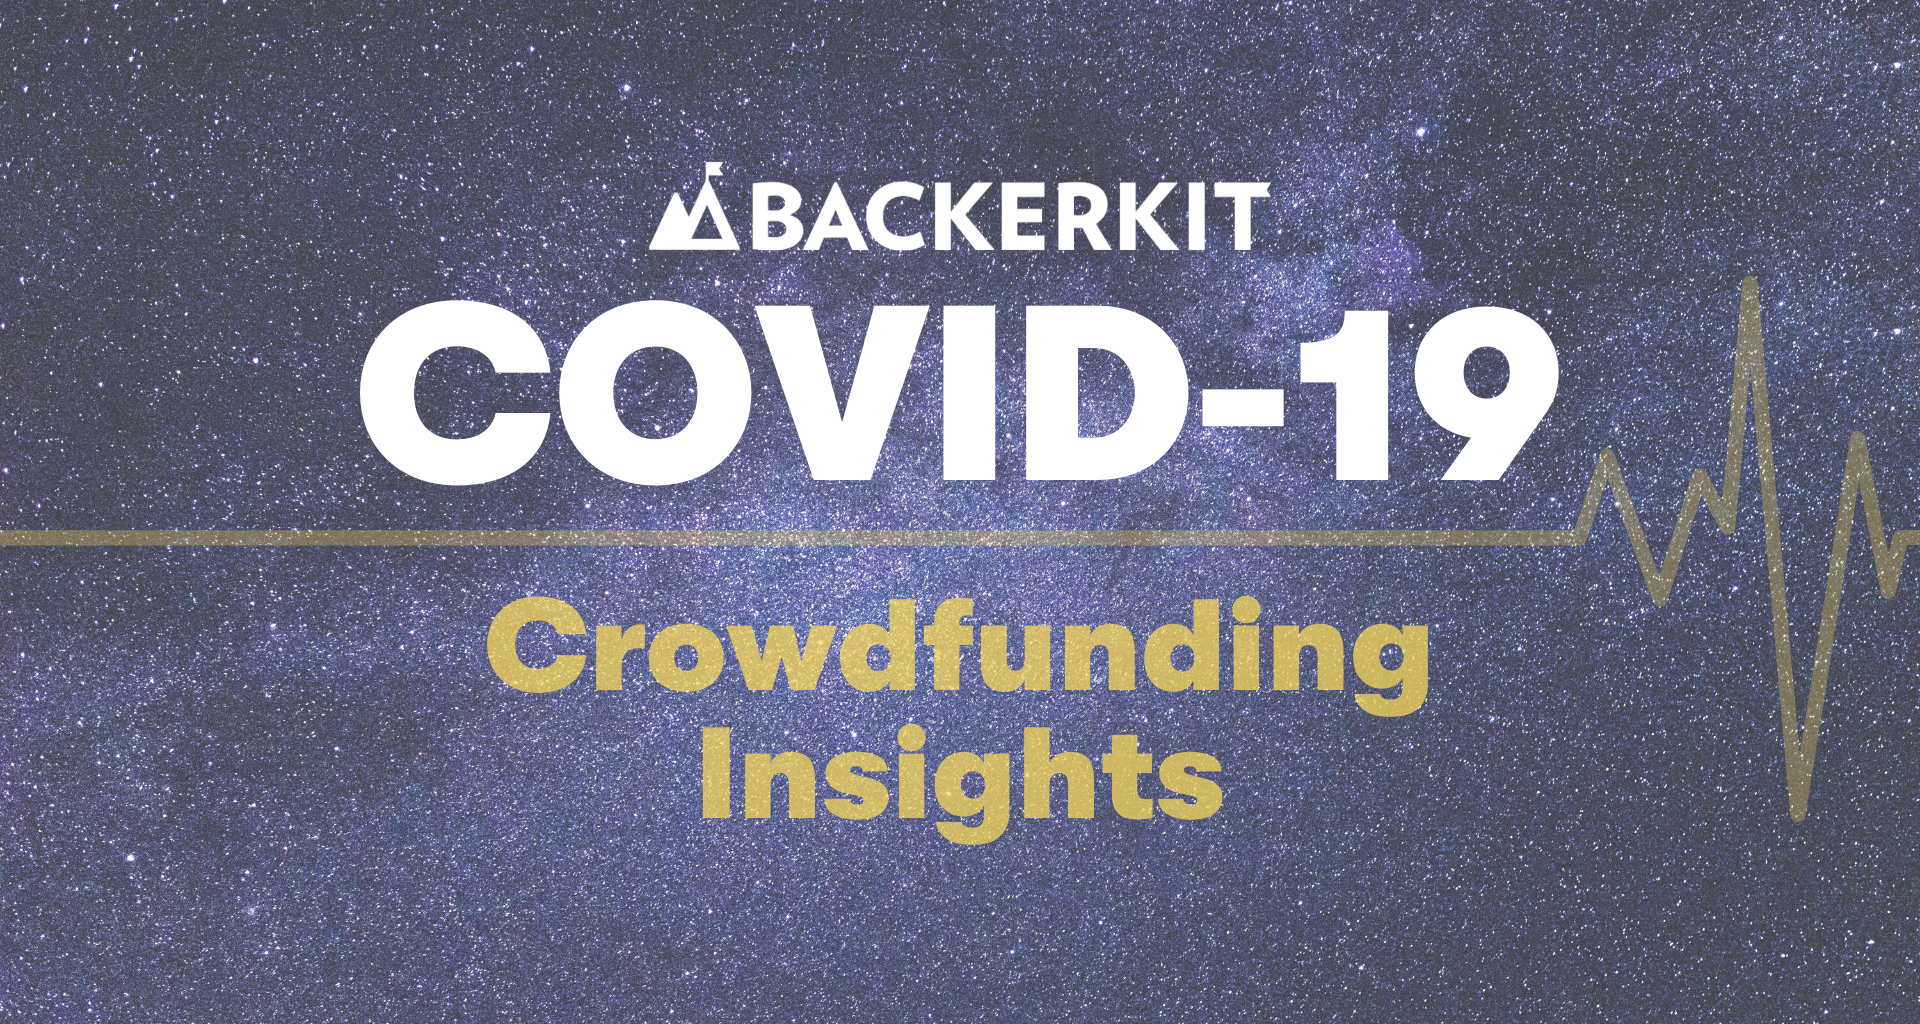 BackerKit-COVID-19-Crowdfunding